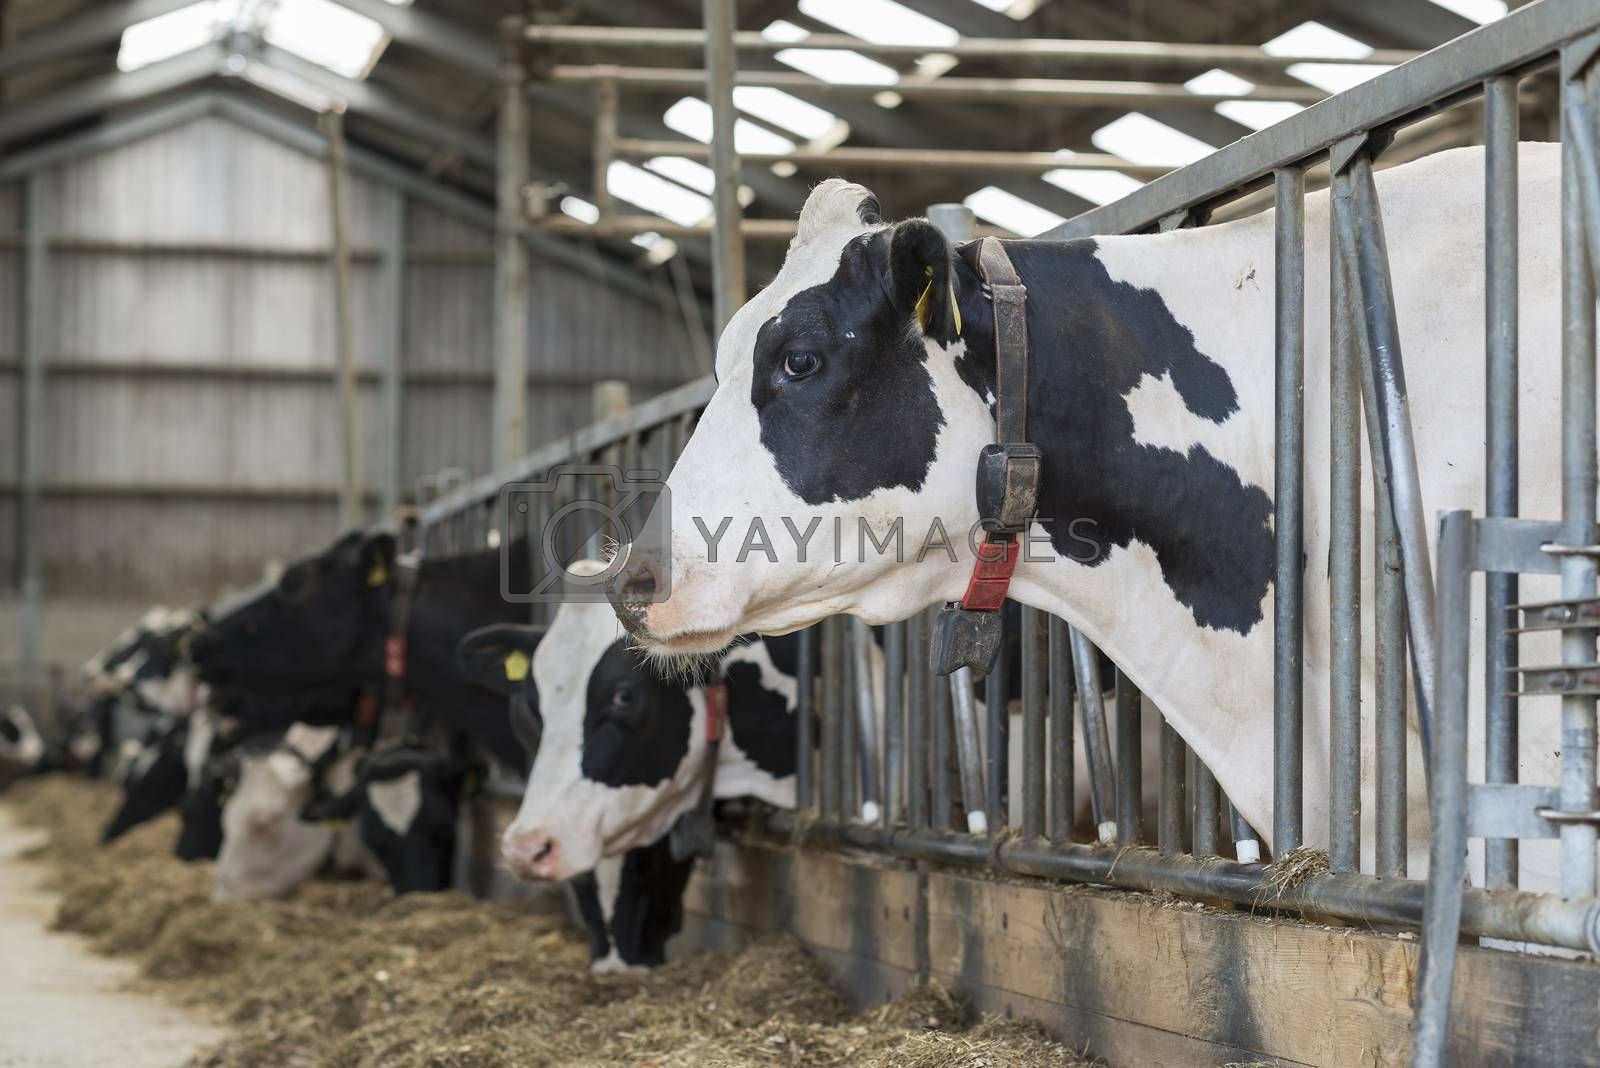 Dairy cows in an open stable on a dairy farm